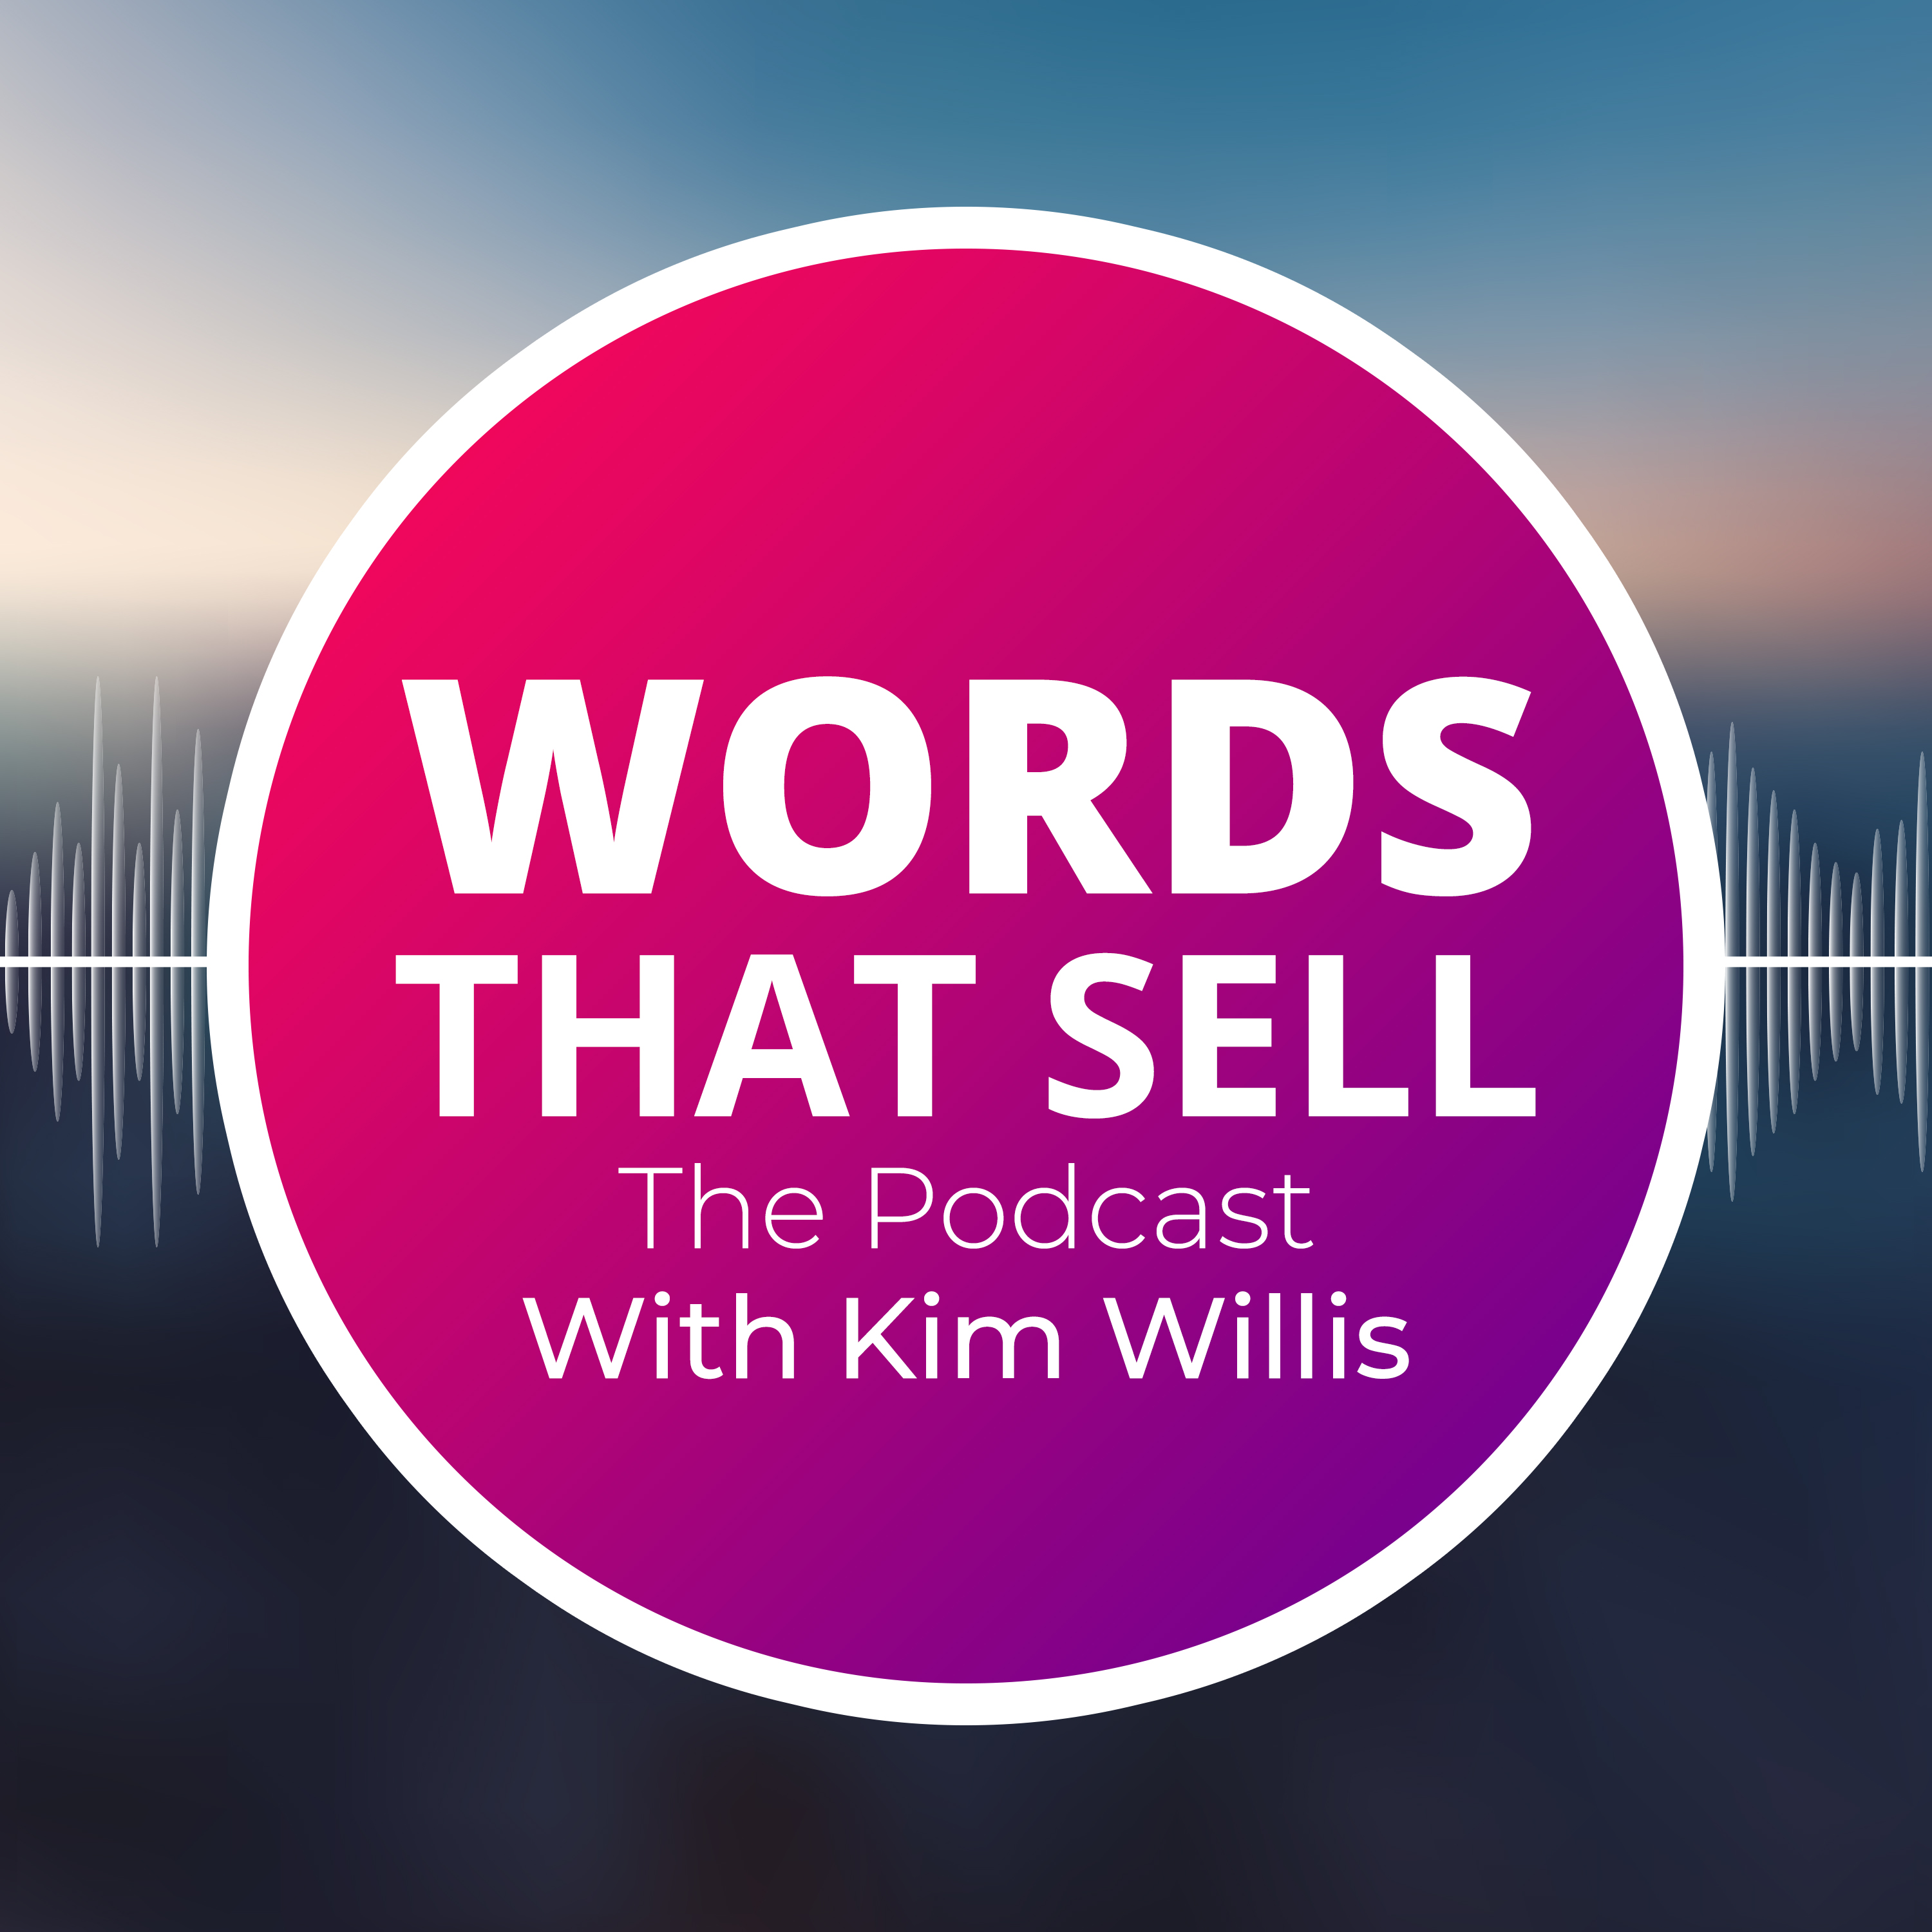 wordsthatsell's podcast show art